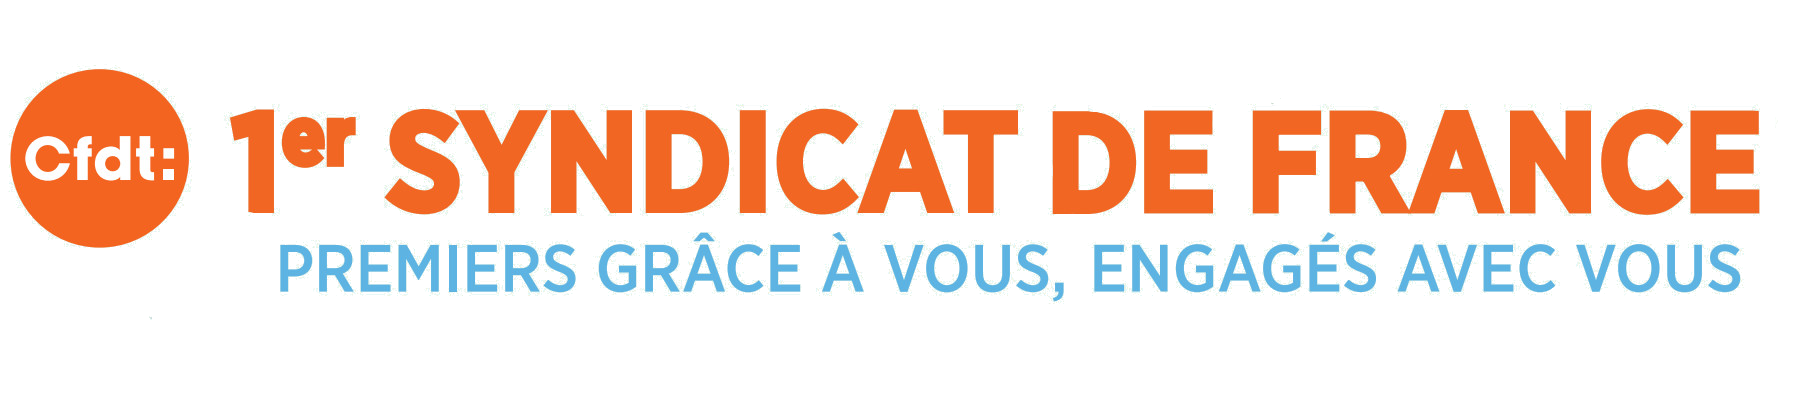 Logo CFDT premier syndicat en France